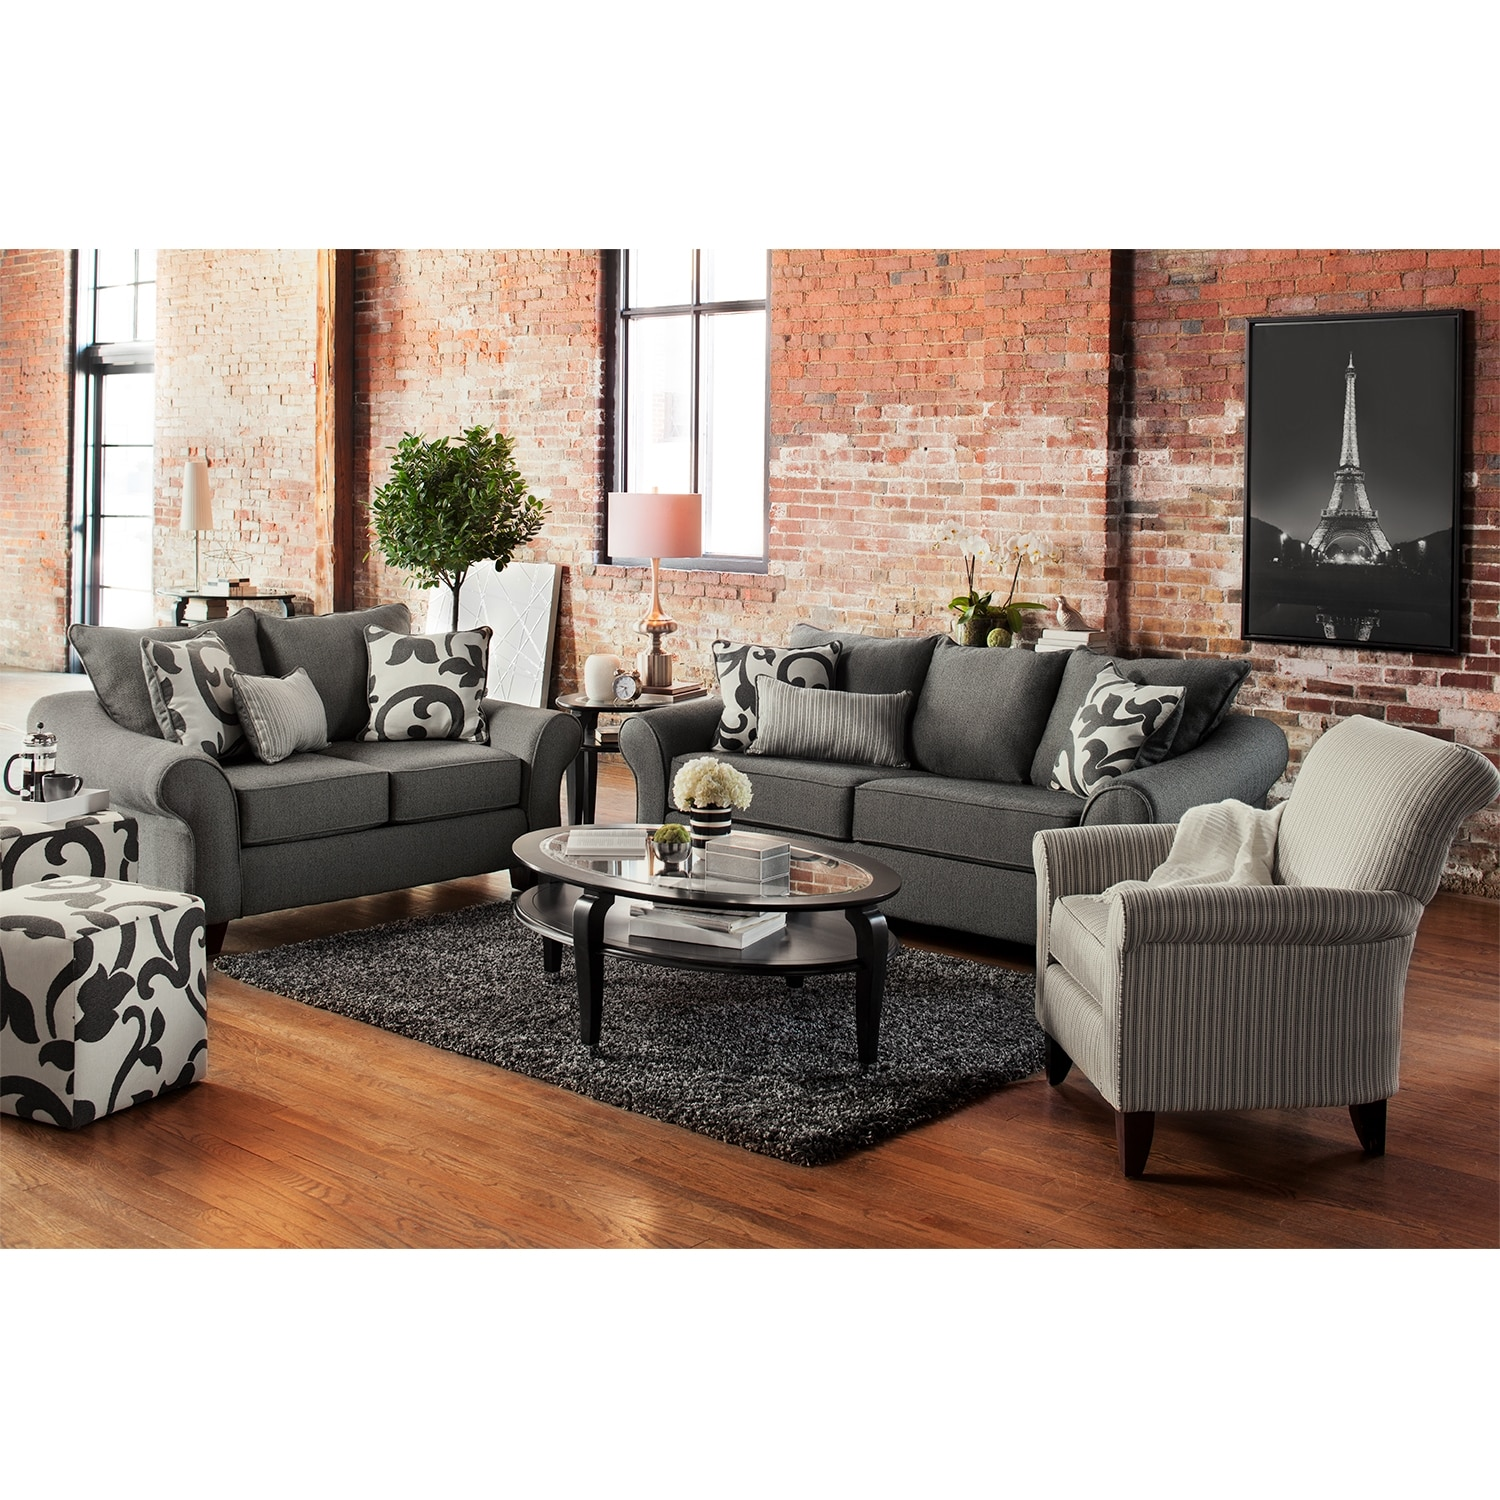 grey living room furniture colette sofa gray value city furniture 11795